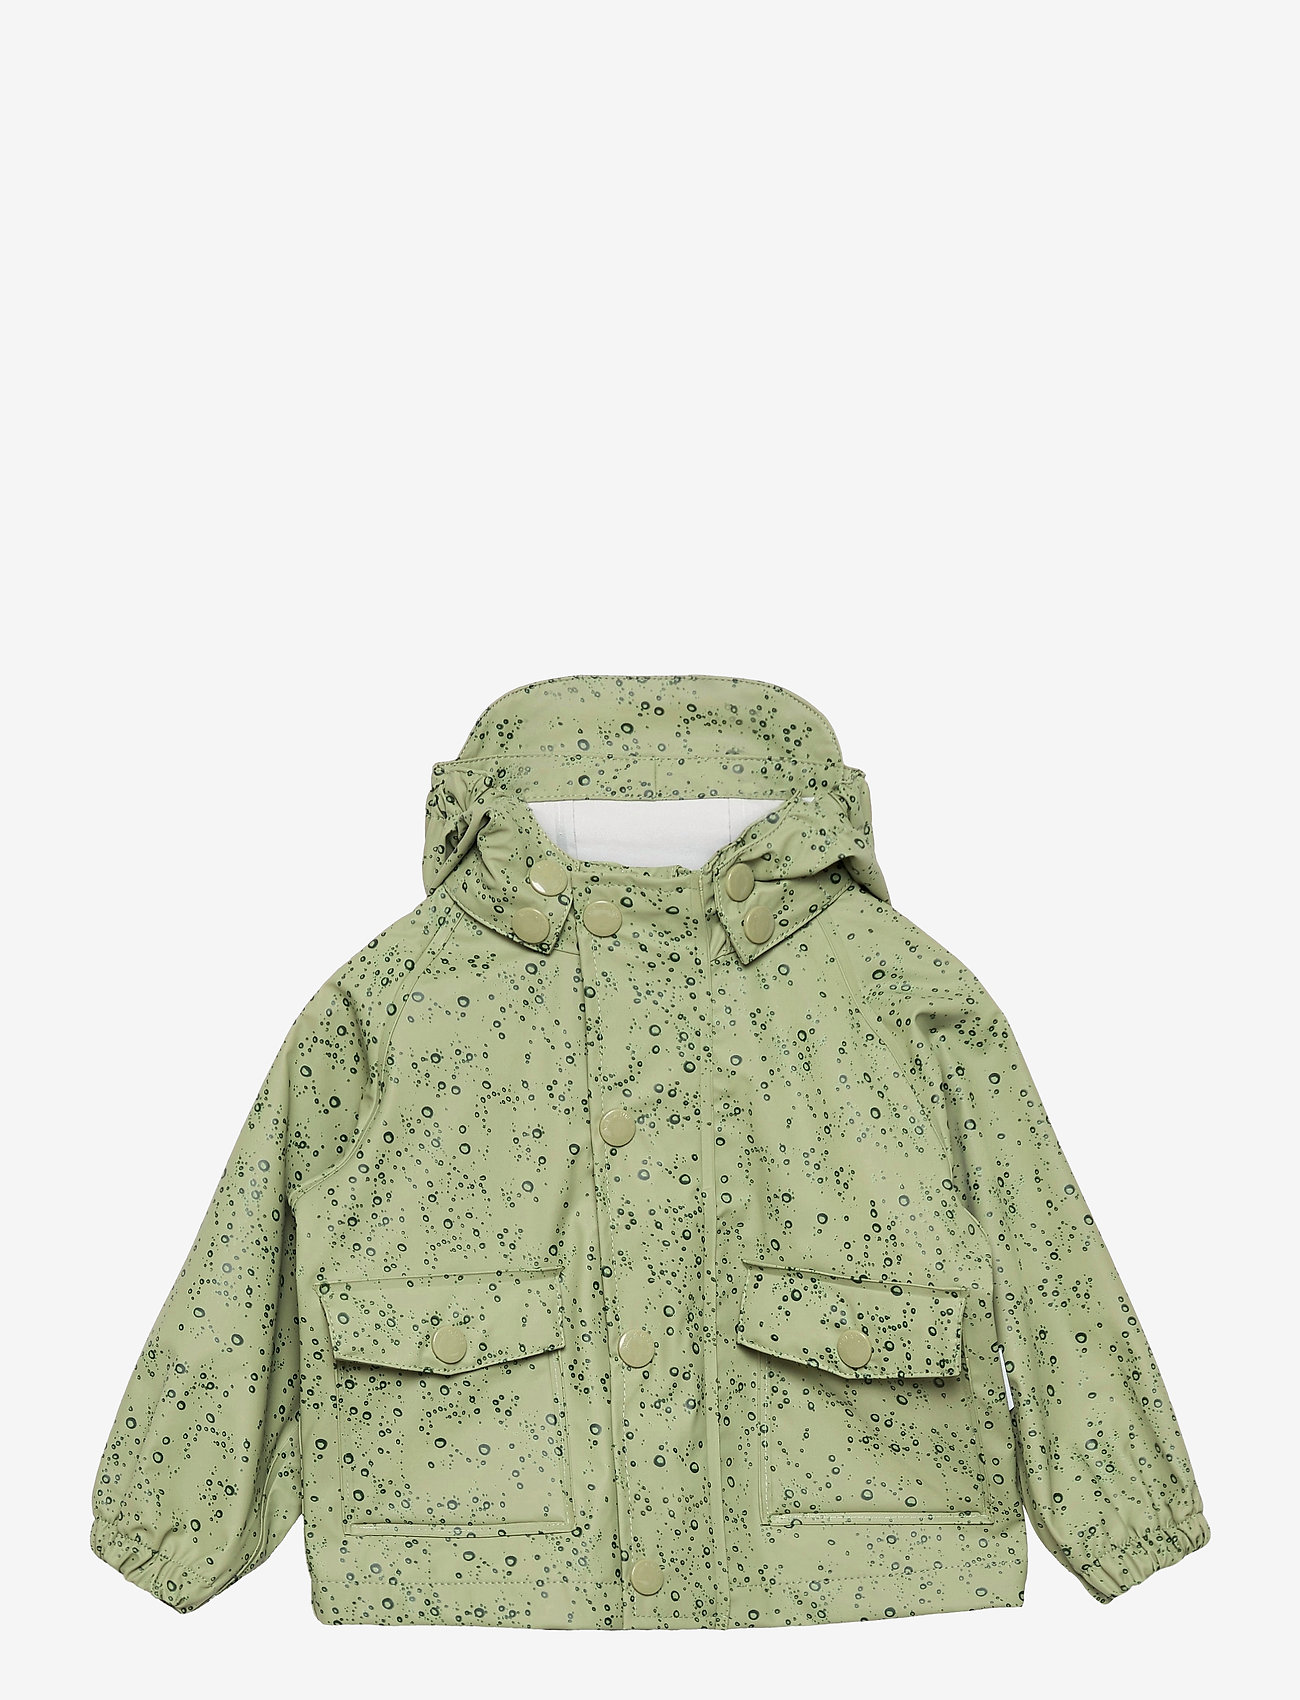 Mini A Ture - Julien Jacket, MK - overall - oil green - 0